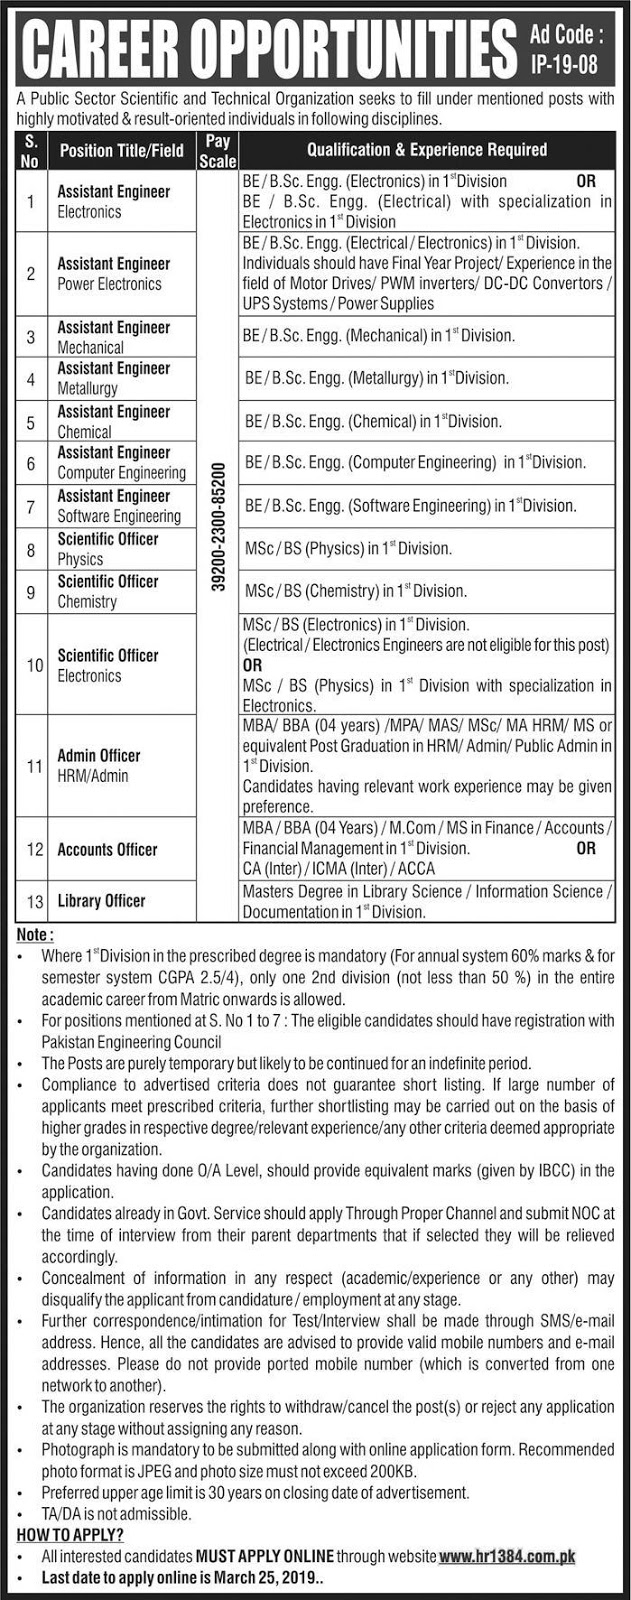 Atomic Energy Jobs March 2019 : Latest Vacancies Announced in Pakistan Atomic Energy